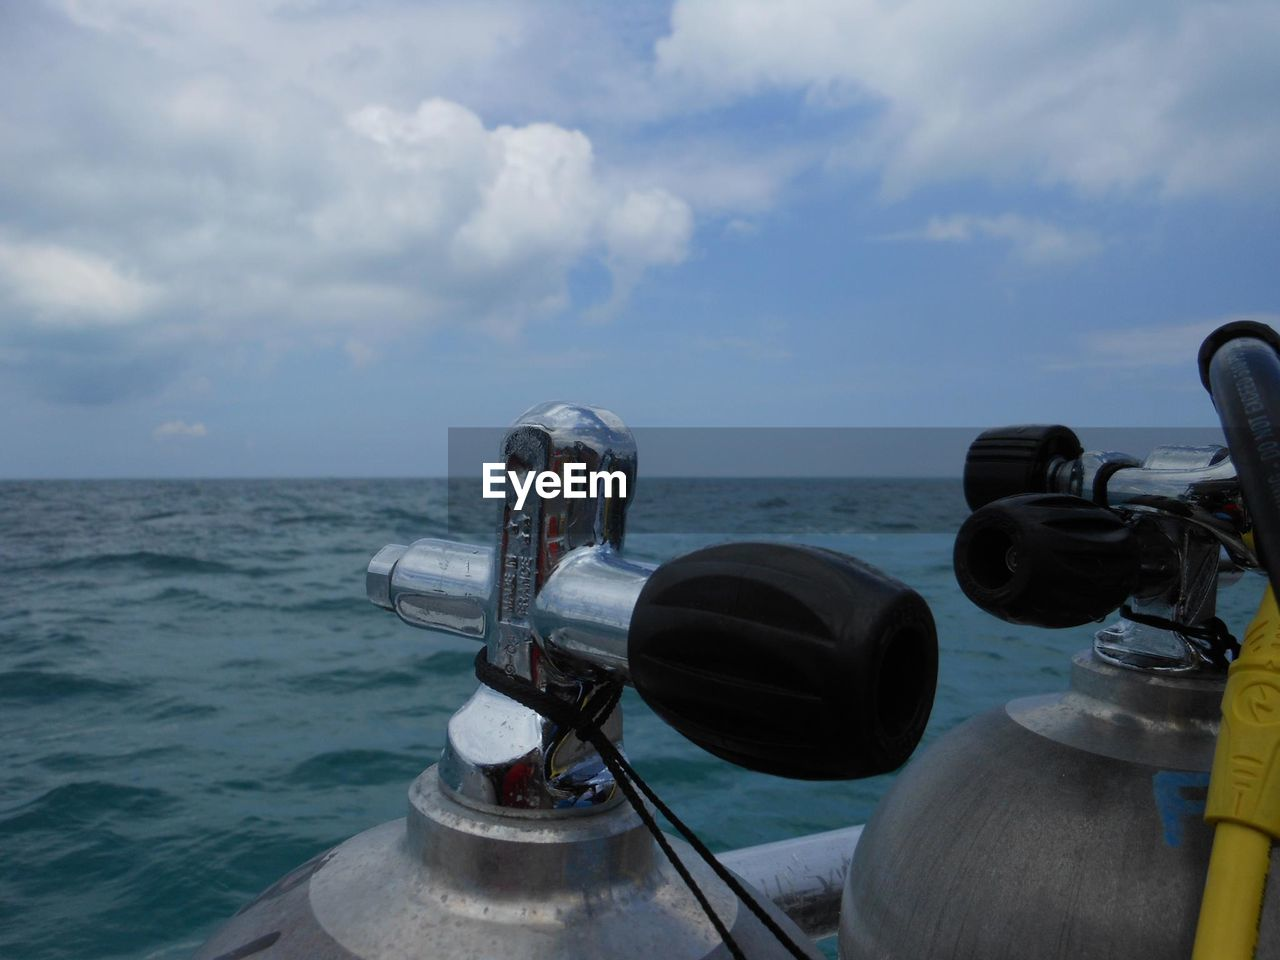 sea, sky, horizon over water, cloud - sky, water, no people, outdoors, nature, day, scenics, nautical vessel, beauty in nature, coin-operated binoculars, close-up, technology